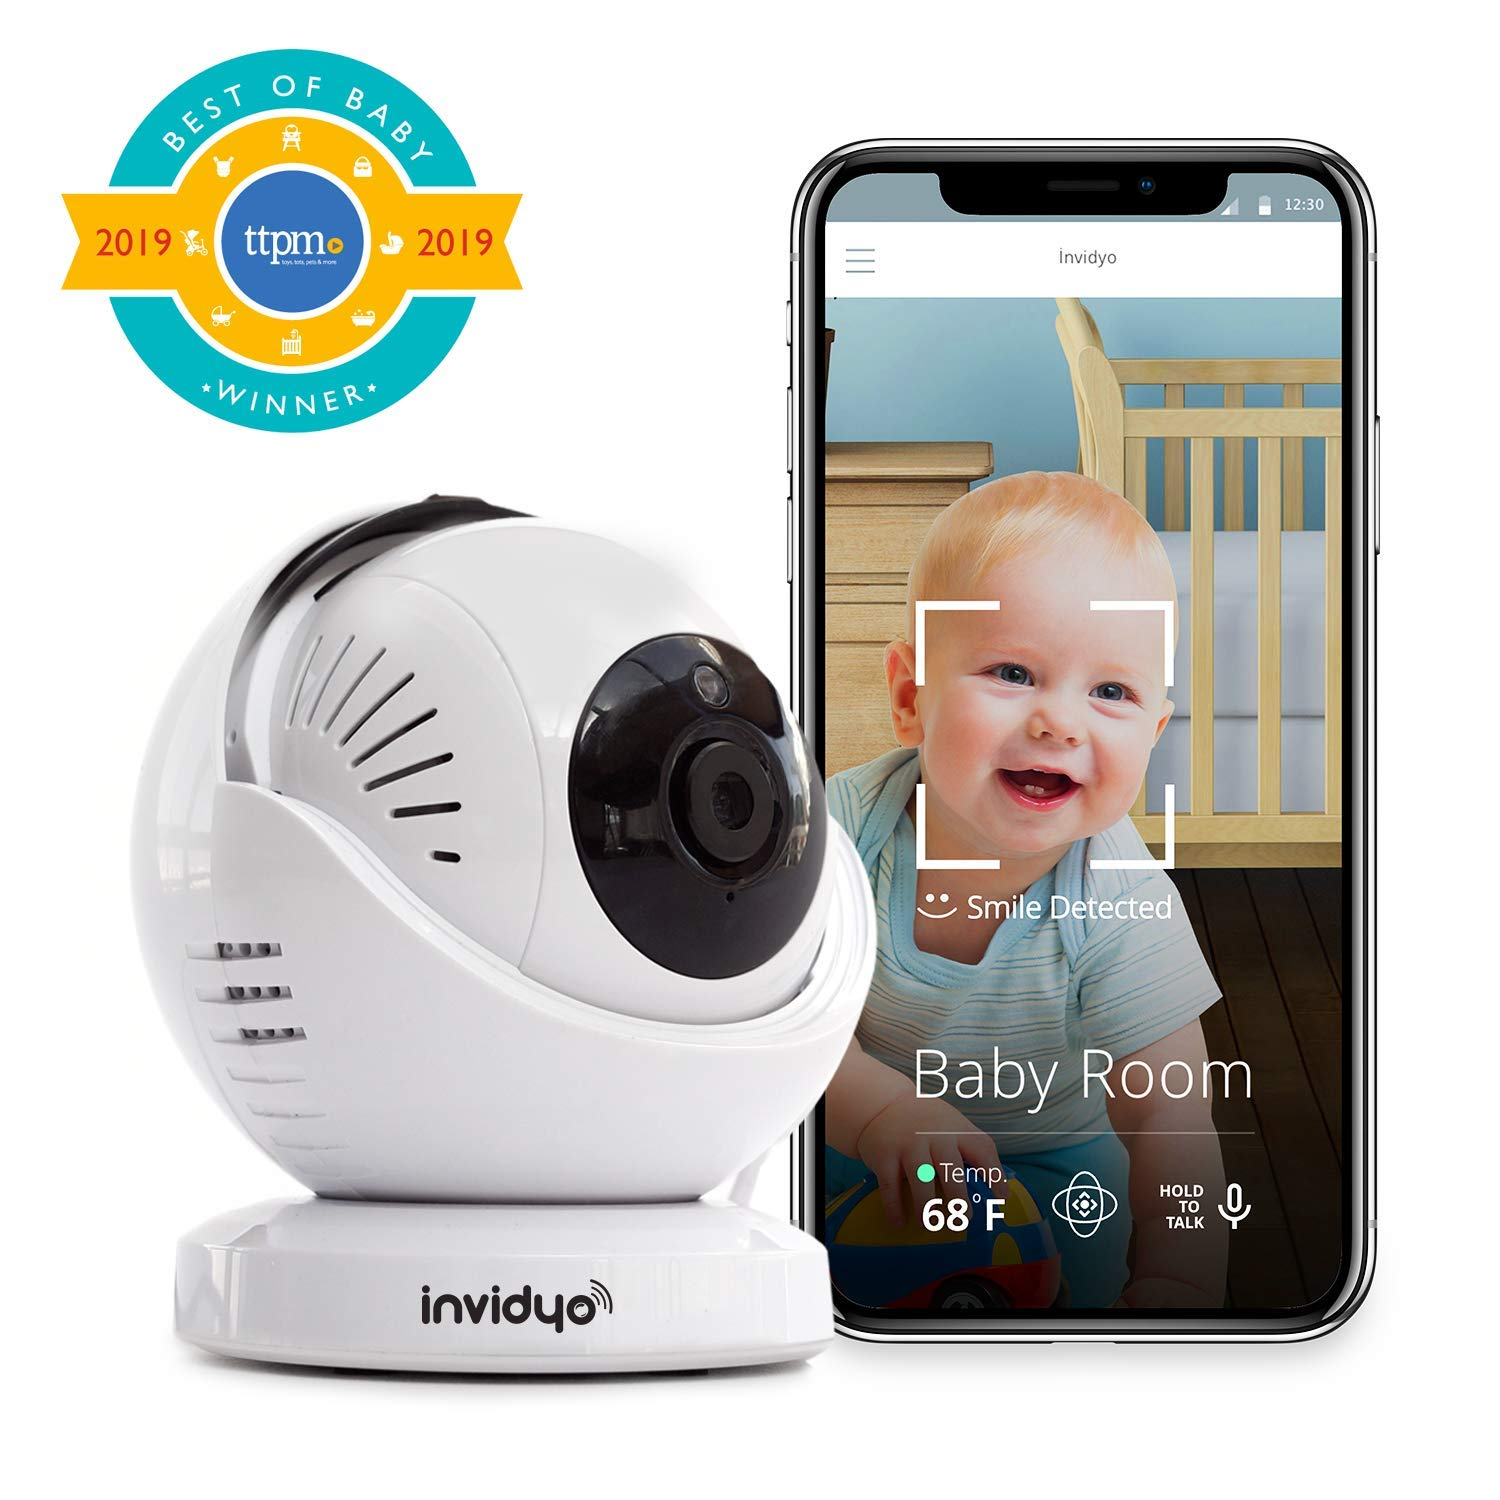 invidyo – WiFi Baby Monitor with Live Video and Audio Cry Detection Stranger Alerts 1080P Full HD Camera, Night Vision, Two Way Talk, Temperature Sensor Remote Pan Tilt via Smart Phone App